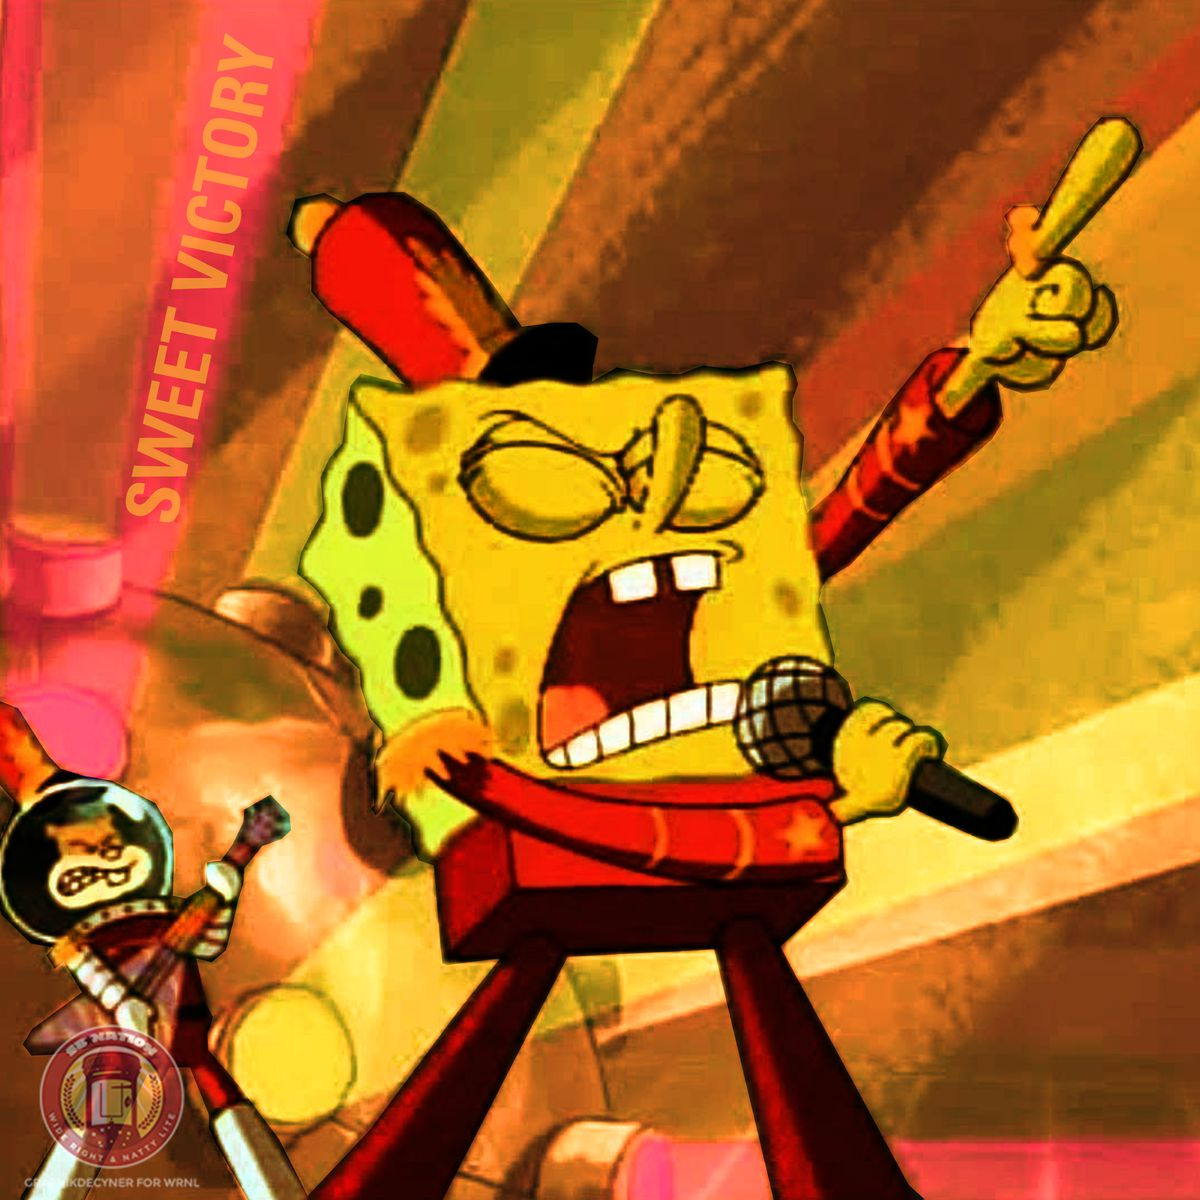 Sweet Victory album cover art, featuring Spongebob SquarePants in the Sweet Victory episode